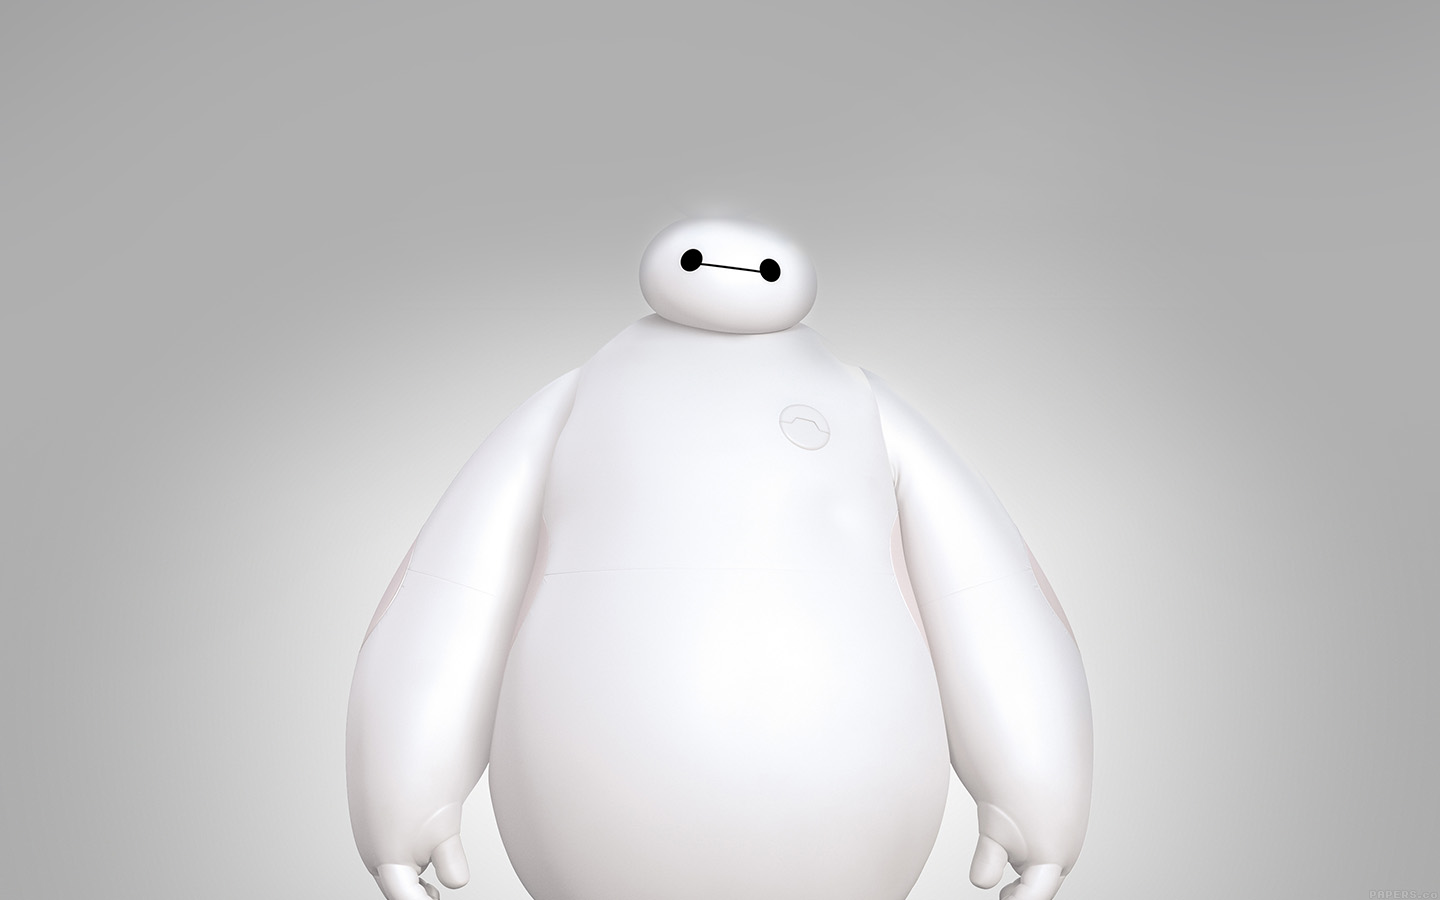 big hero 6 movie baymax - photo #27